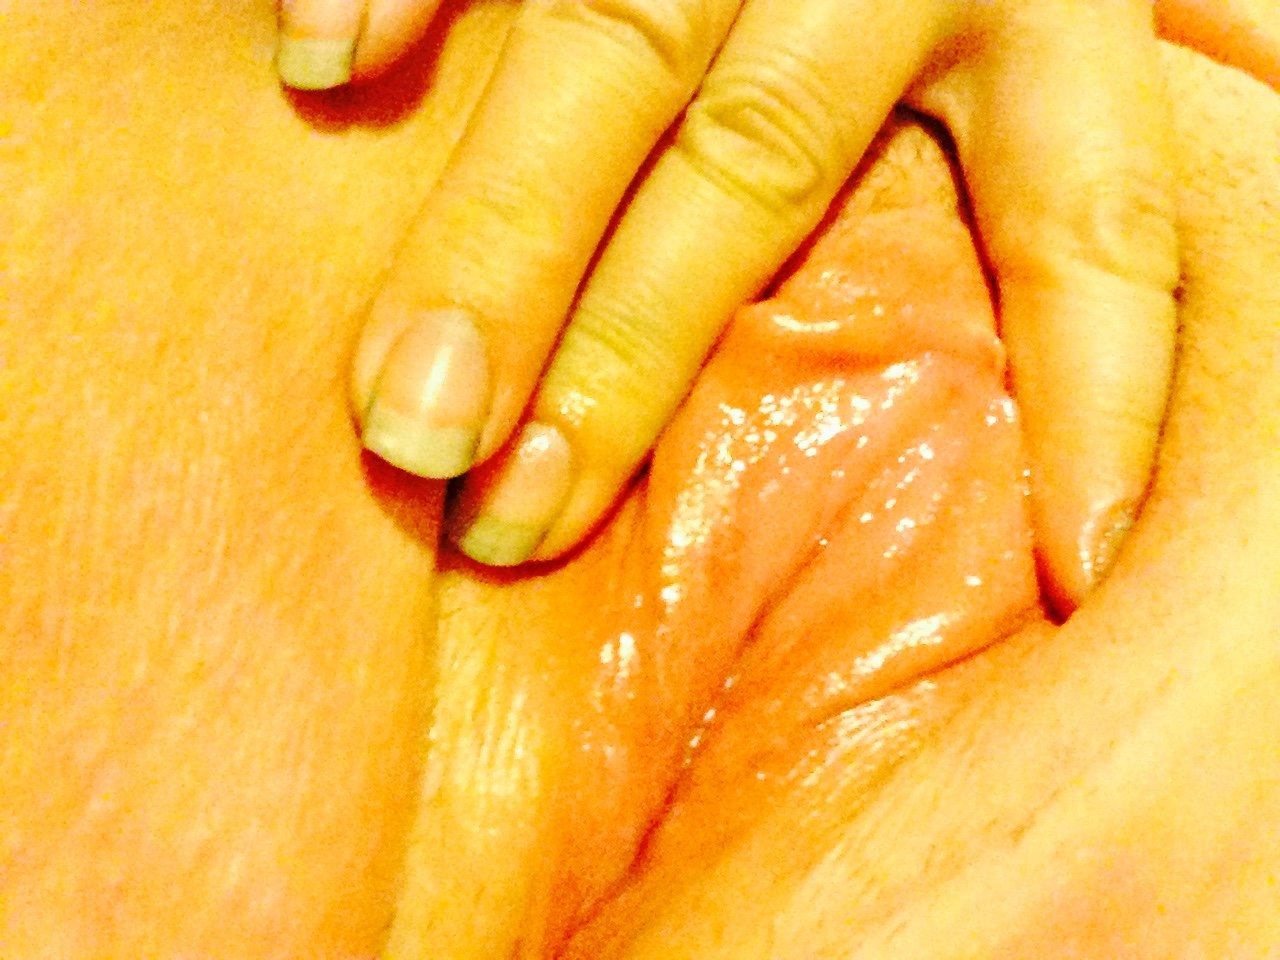 watch my gf orgasm